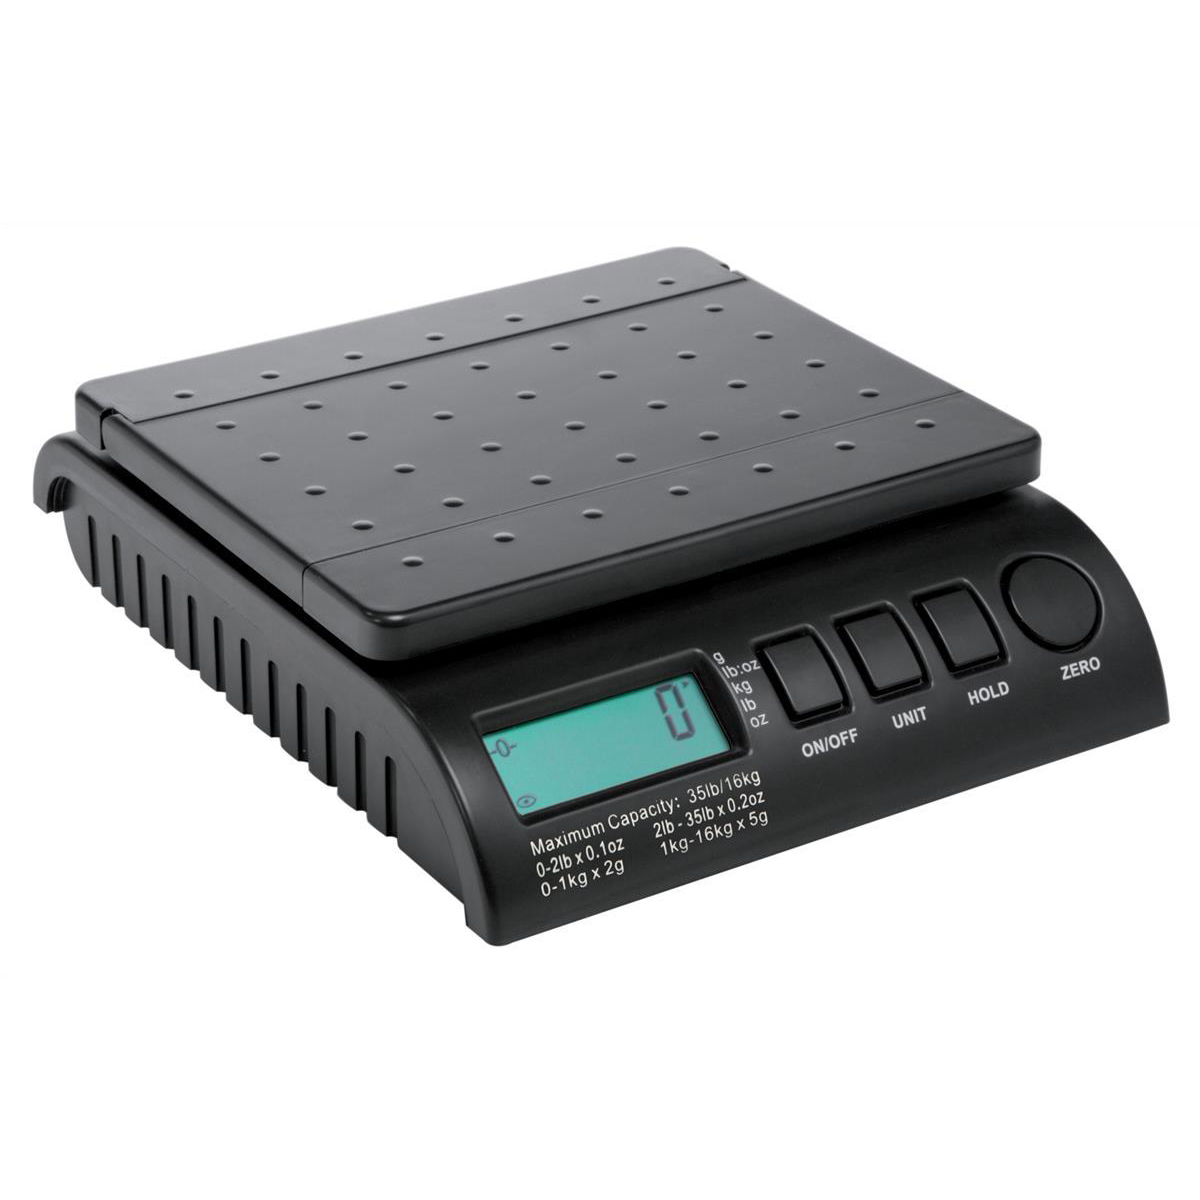 Scales Postship Multi Purpose Scale 2g Increments Capacity 16kg LCD Display Black Ref PS160B